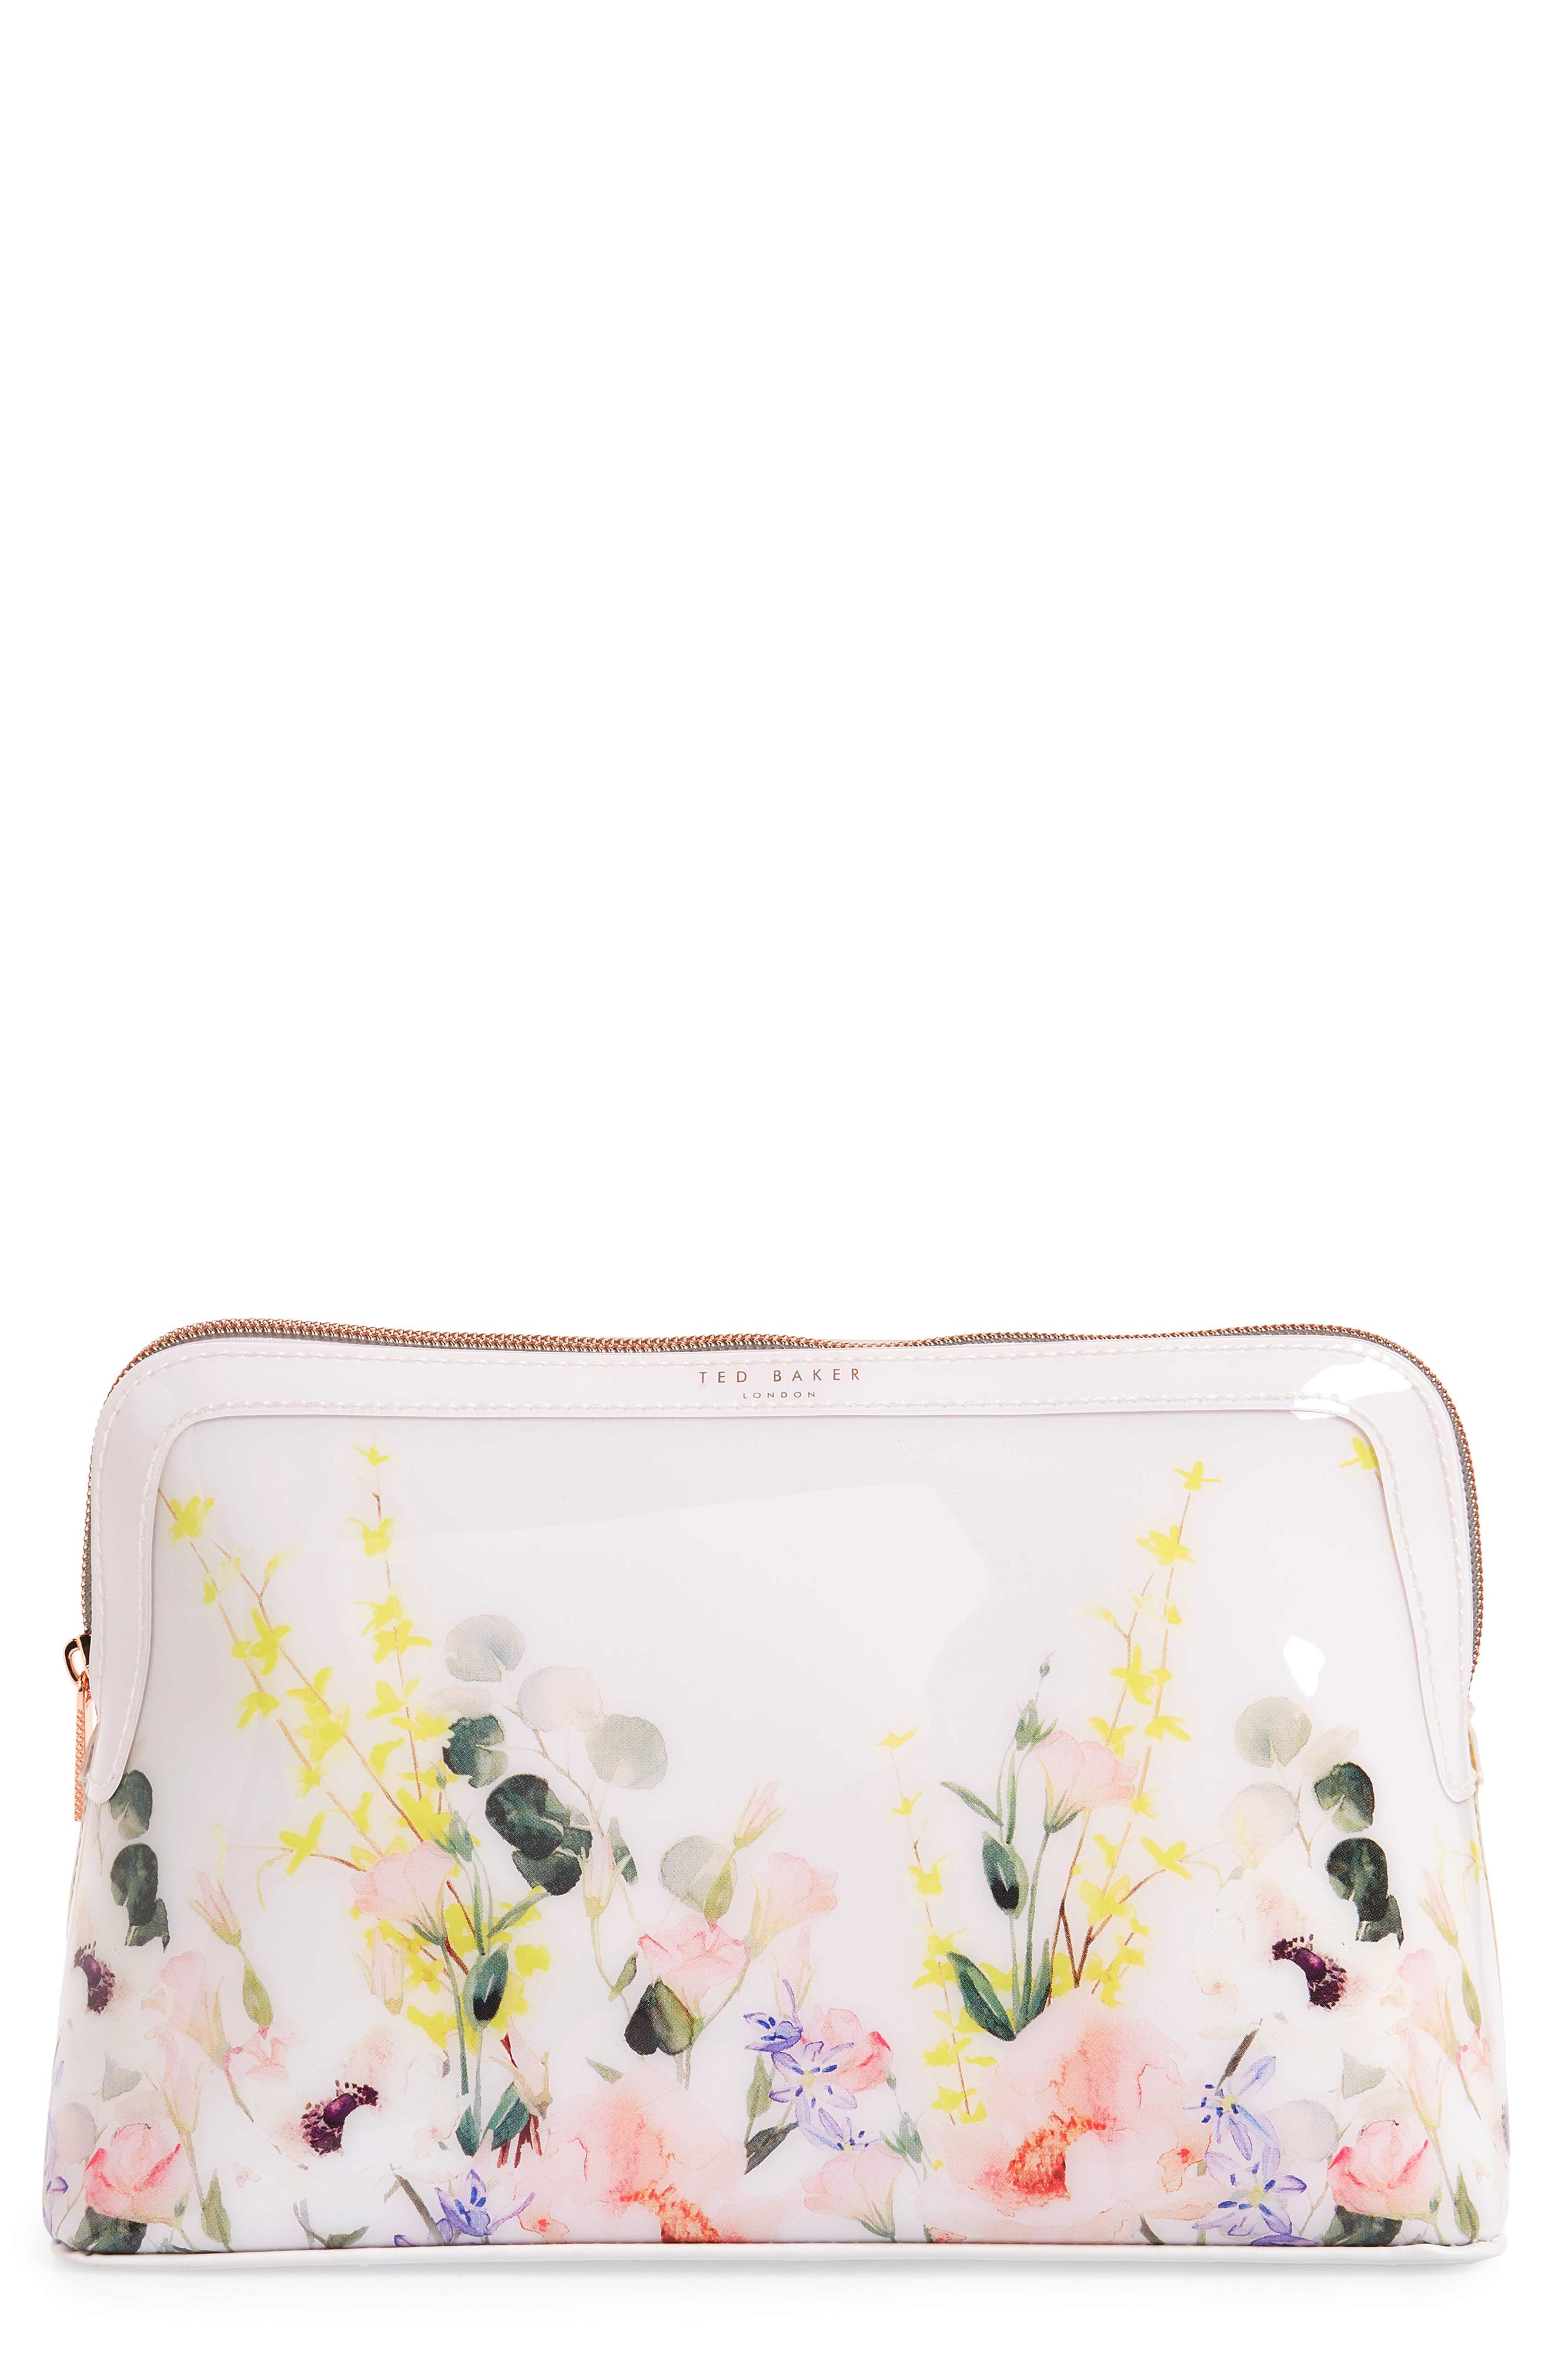 TED BAKER LONDON Sybill Print Large Cosmetics Case, Main, color, NUDE PINK